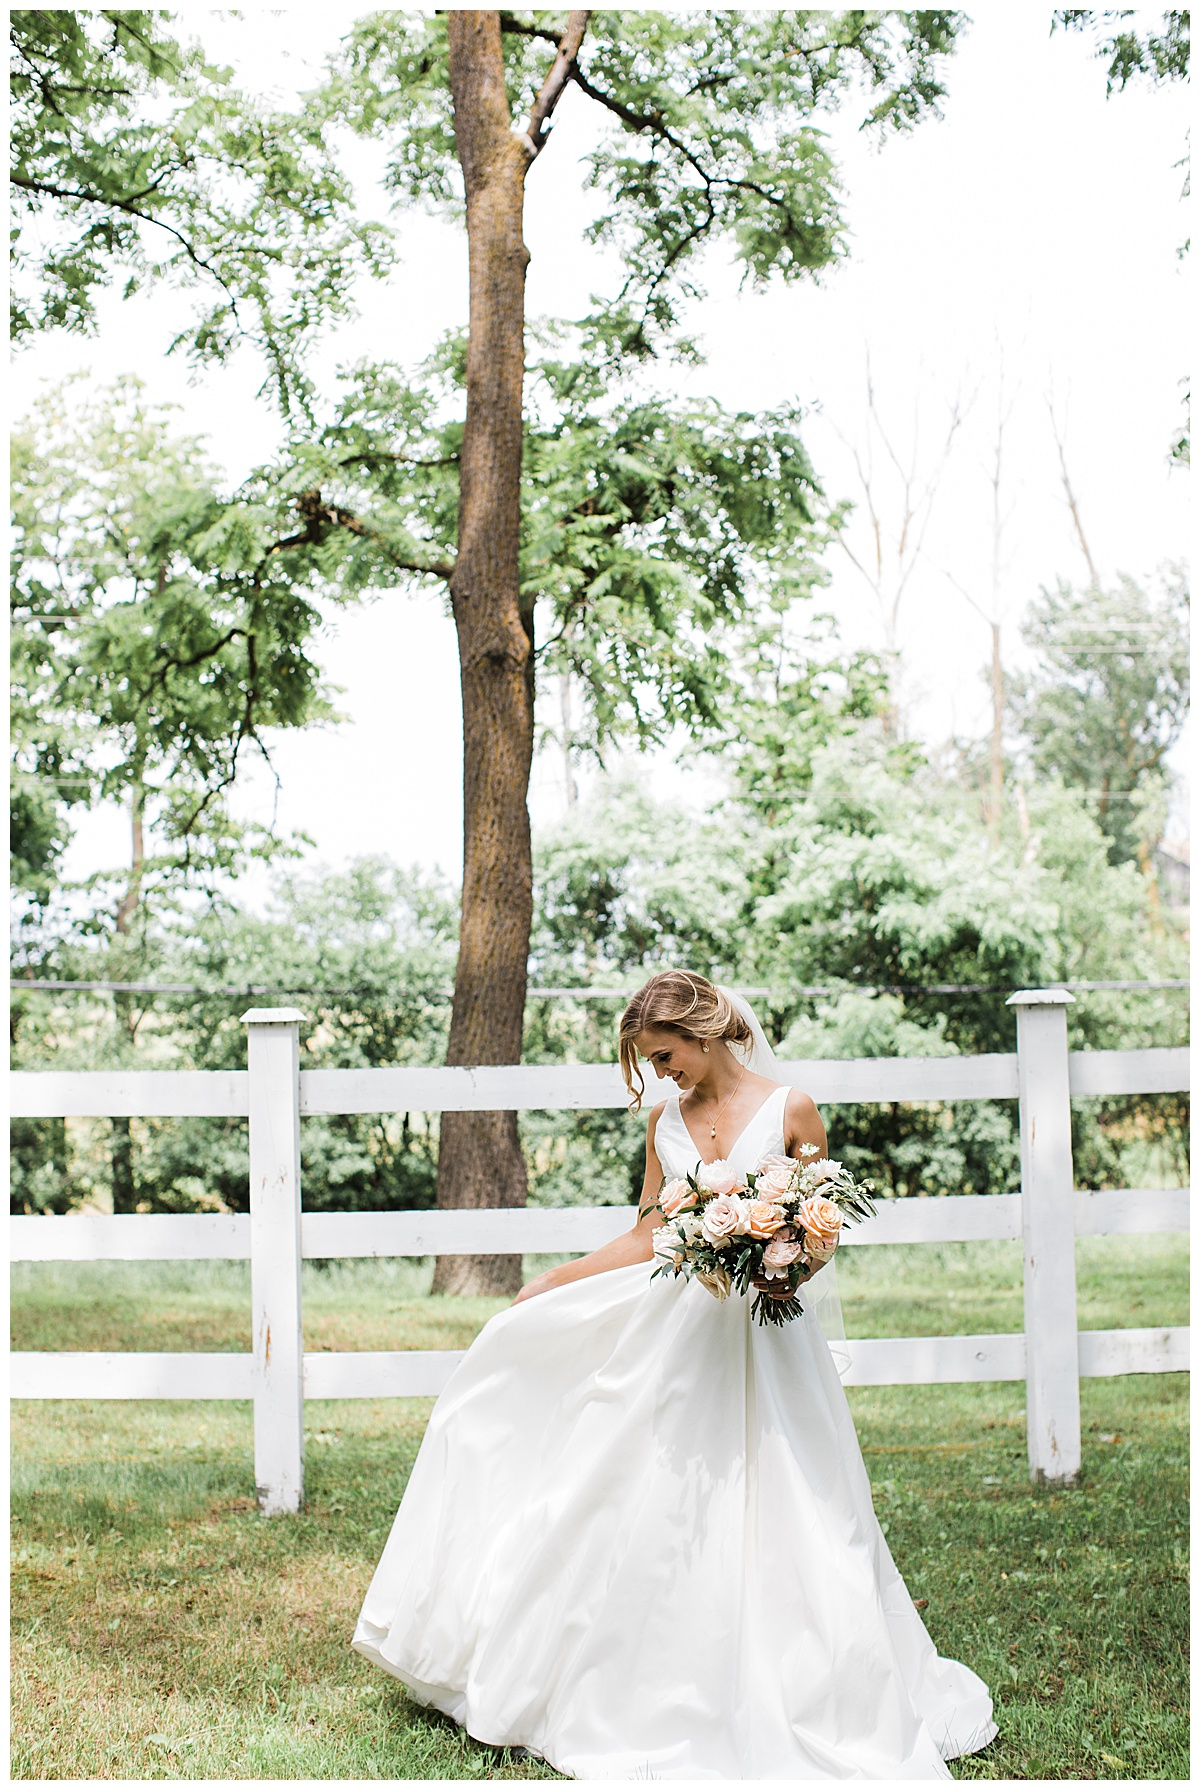 Bride under tree in front of white fence holding her gown up  Georgetown, Ontario wedding  Toronto wedding photographer  3photography